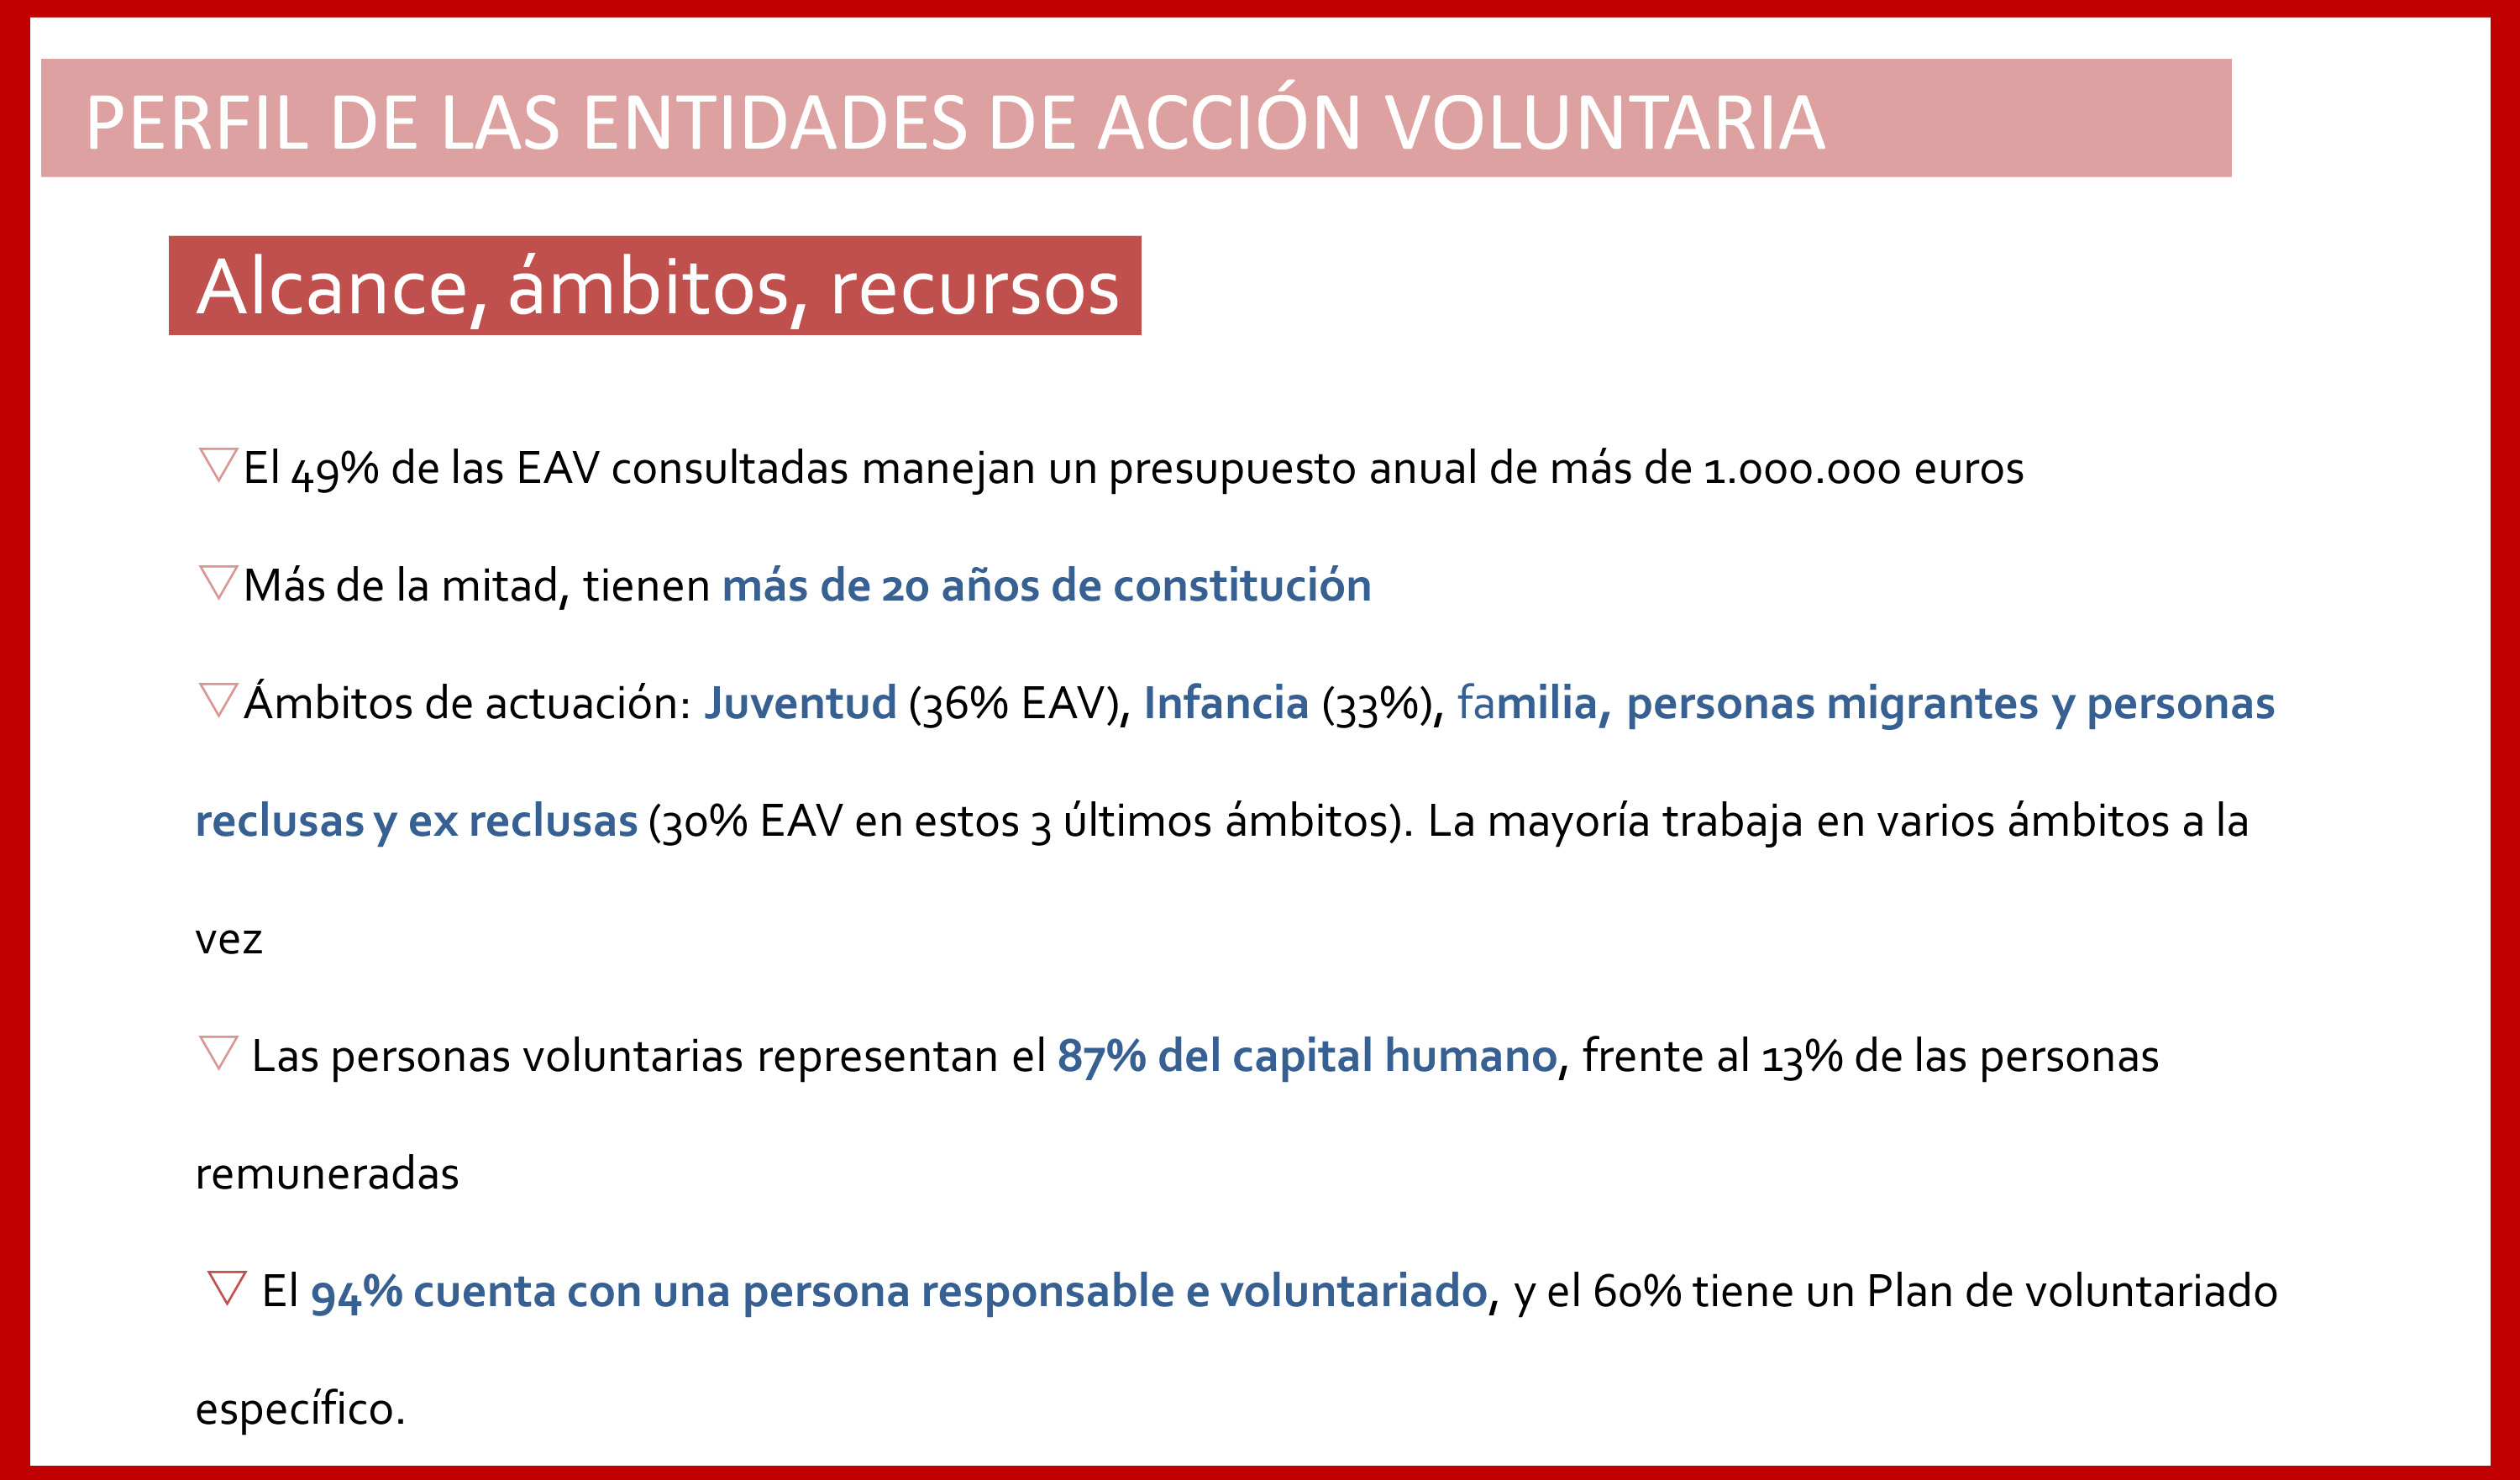 perfil_voluntariado_madrid_entidades de voluntariado